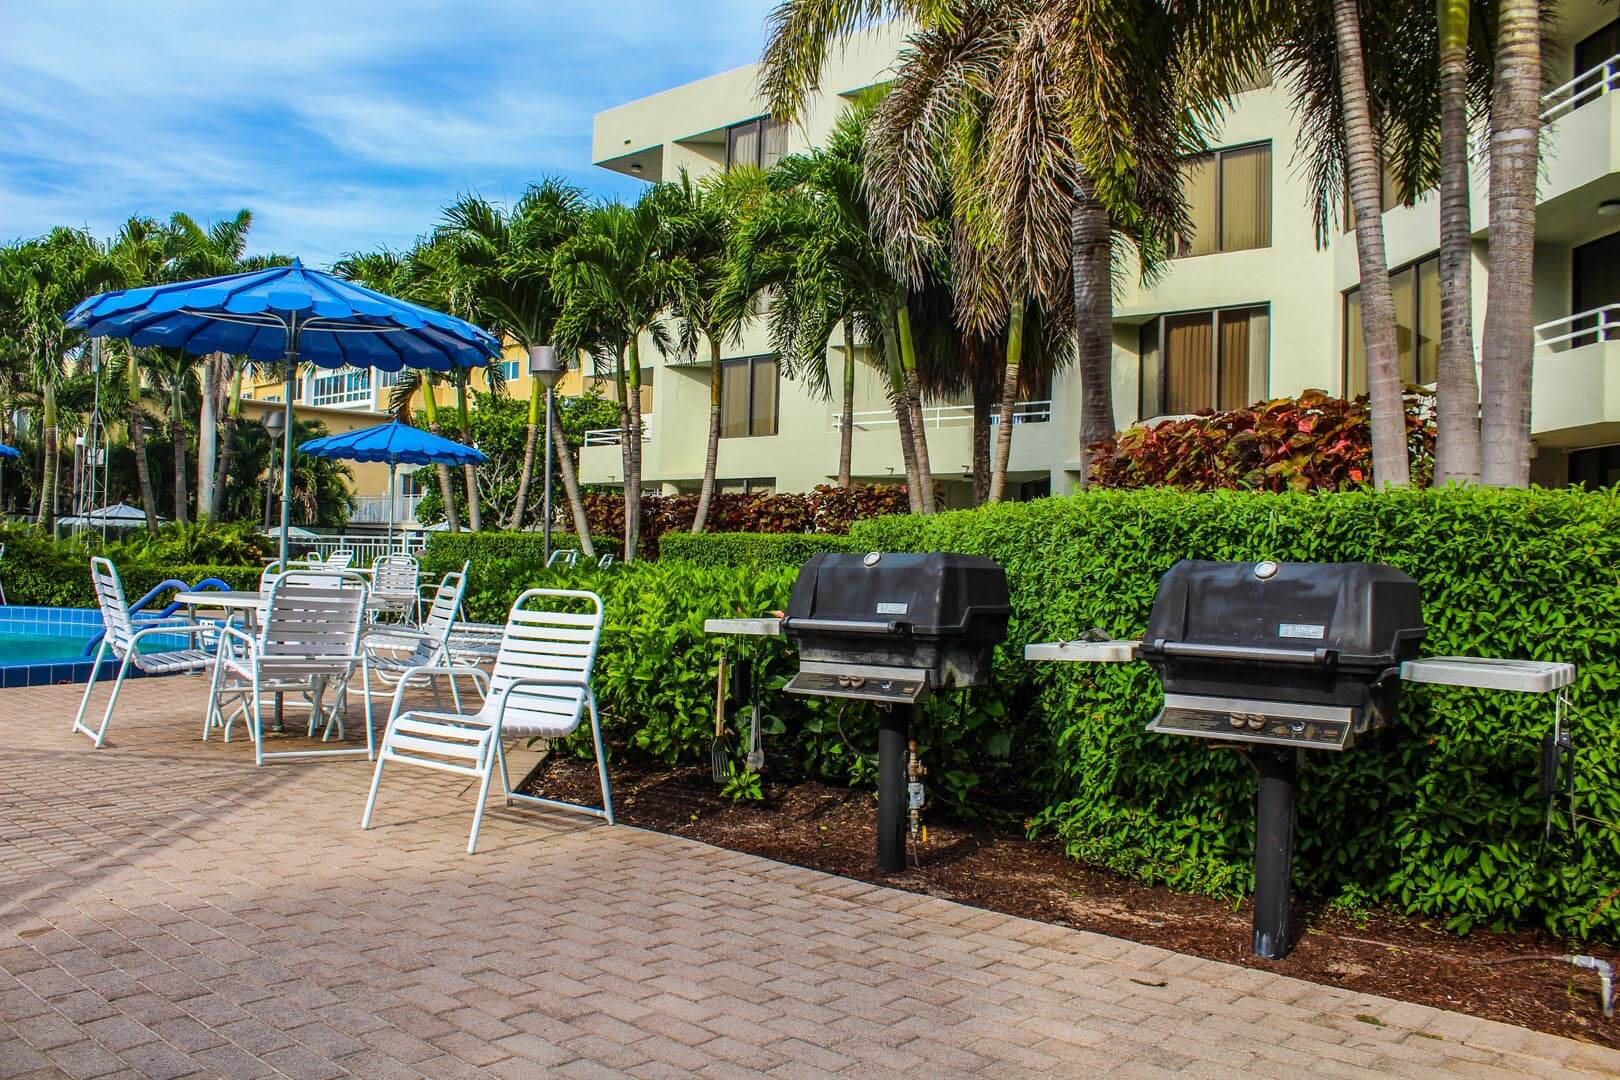 Birkshire By The Sea BBQ Grills